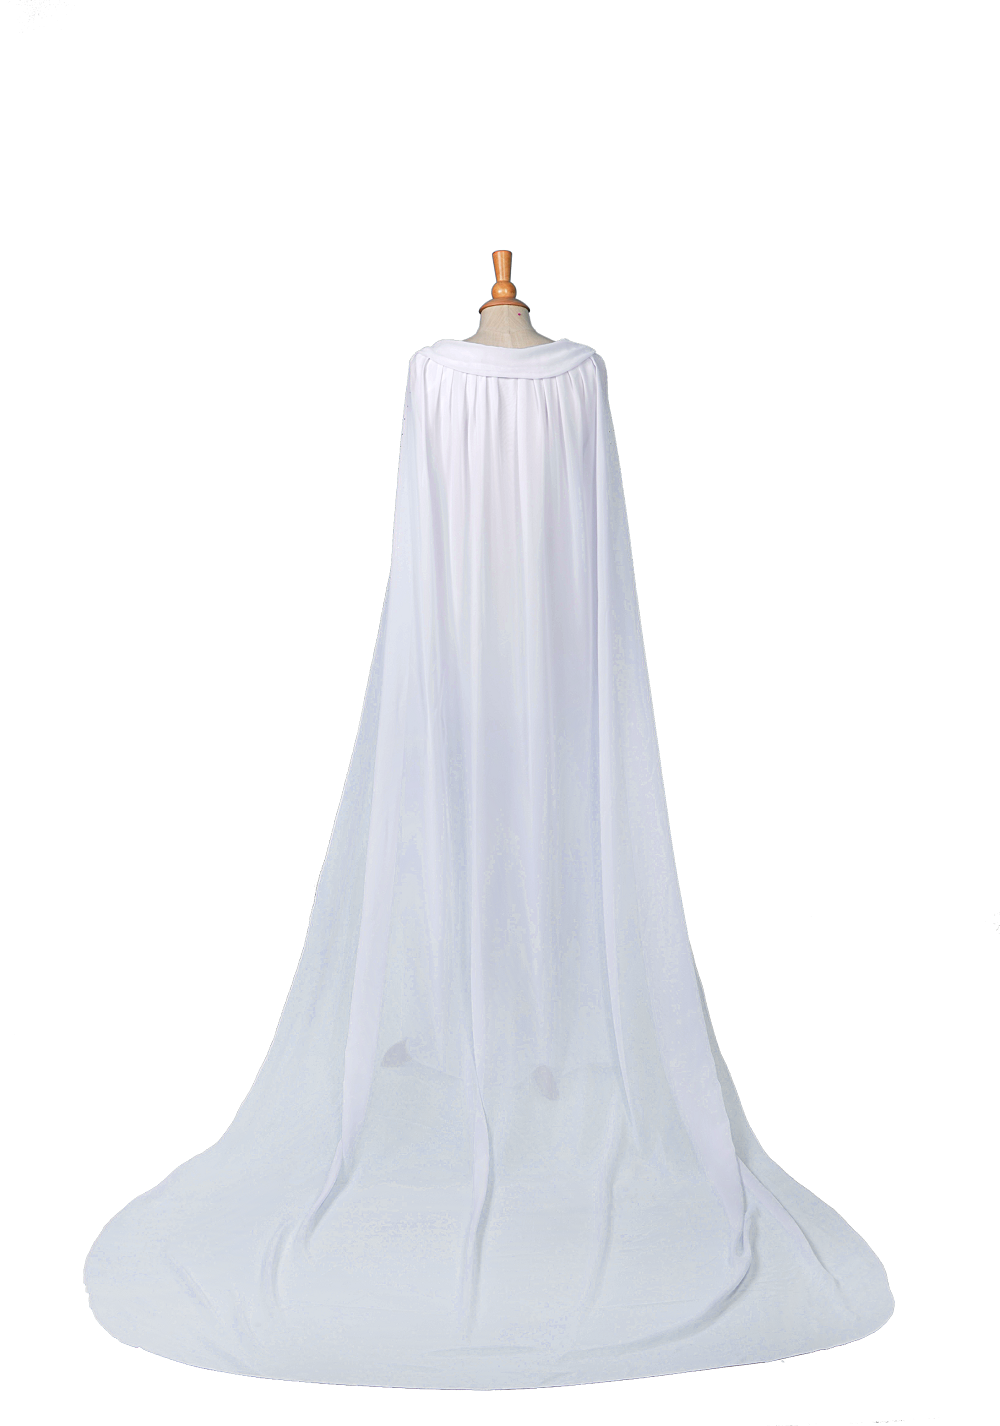 Lord of the Rings Galadriel Cosplay Costume